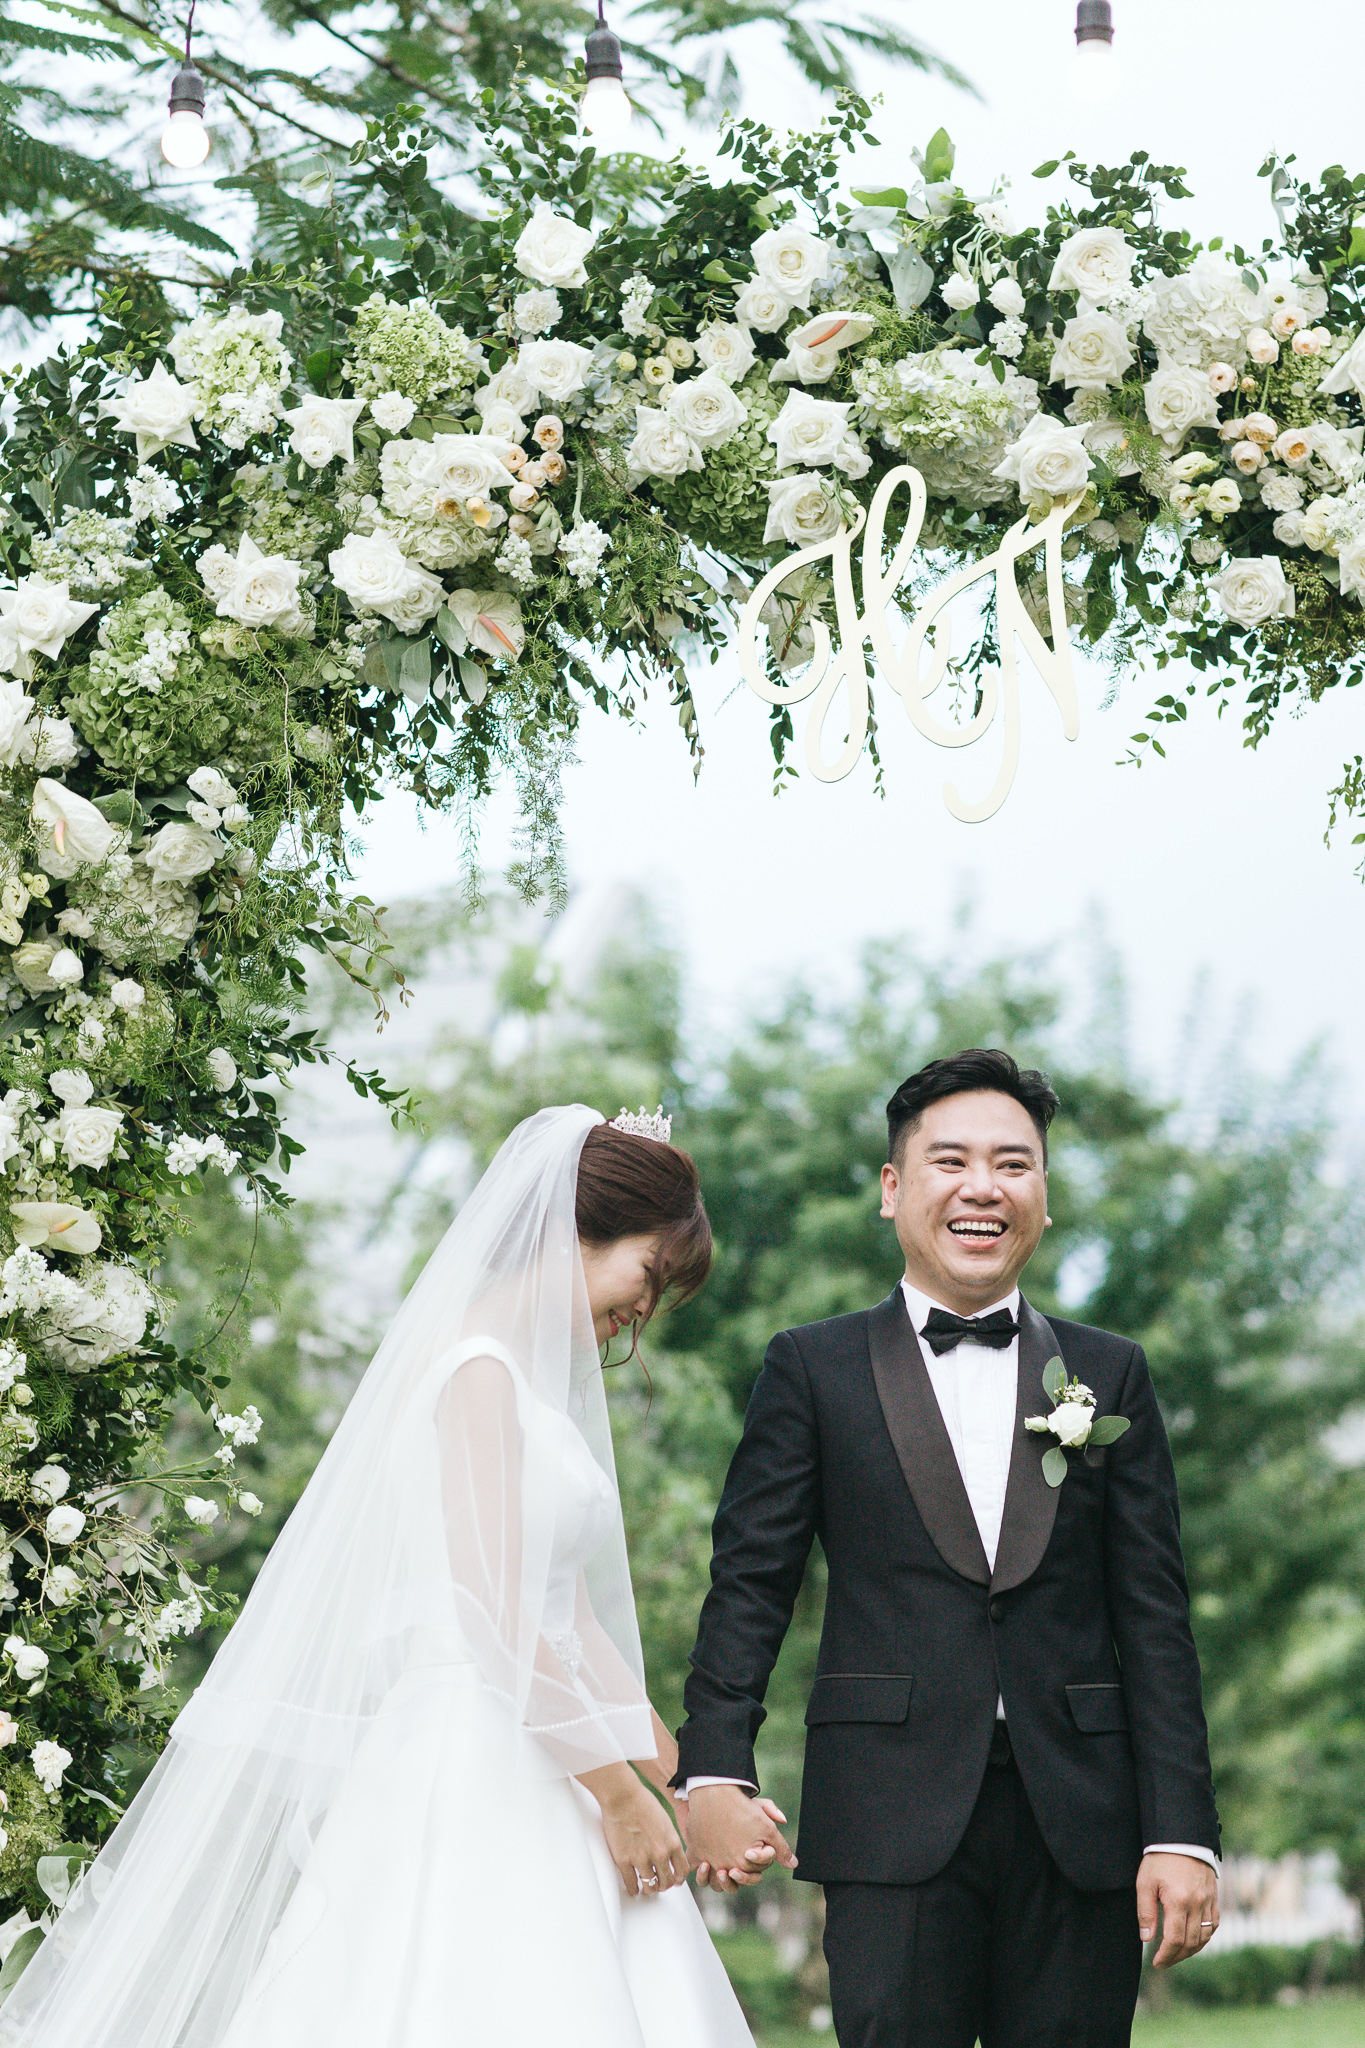 - Clients: Phuong Nam & Thanh HaPlanner: Giang BuiConcept, decoration & coordination: The F LabVenue: JW Marriott HanoiPhoto: Bao PlasmaVideo: Forart Wedding filmMUA: Tu TaWedding dress: Sue Ann BridalGroom Attire: Danva